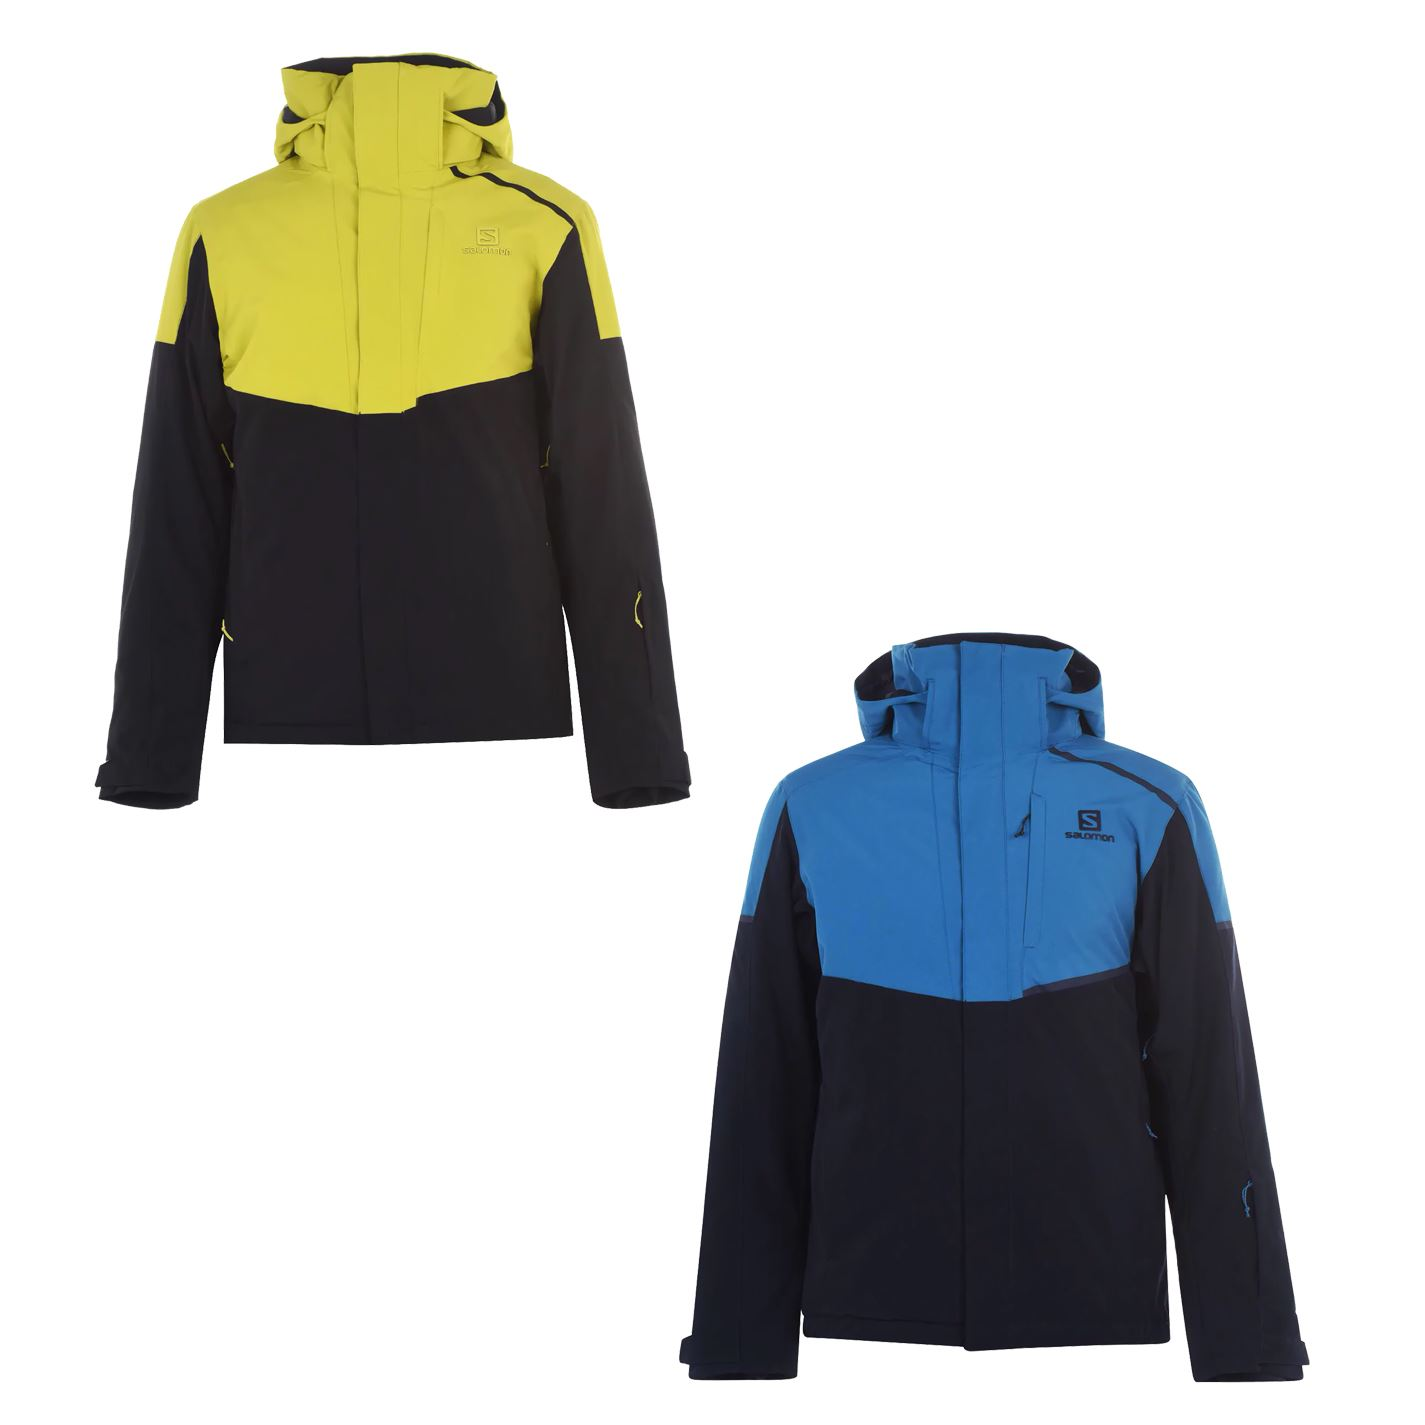 Details about Salomon Rise Jacket Mens Ski Snowboarding Hooded Skiing Top Snow Outerwear